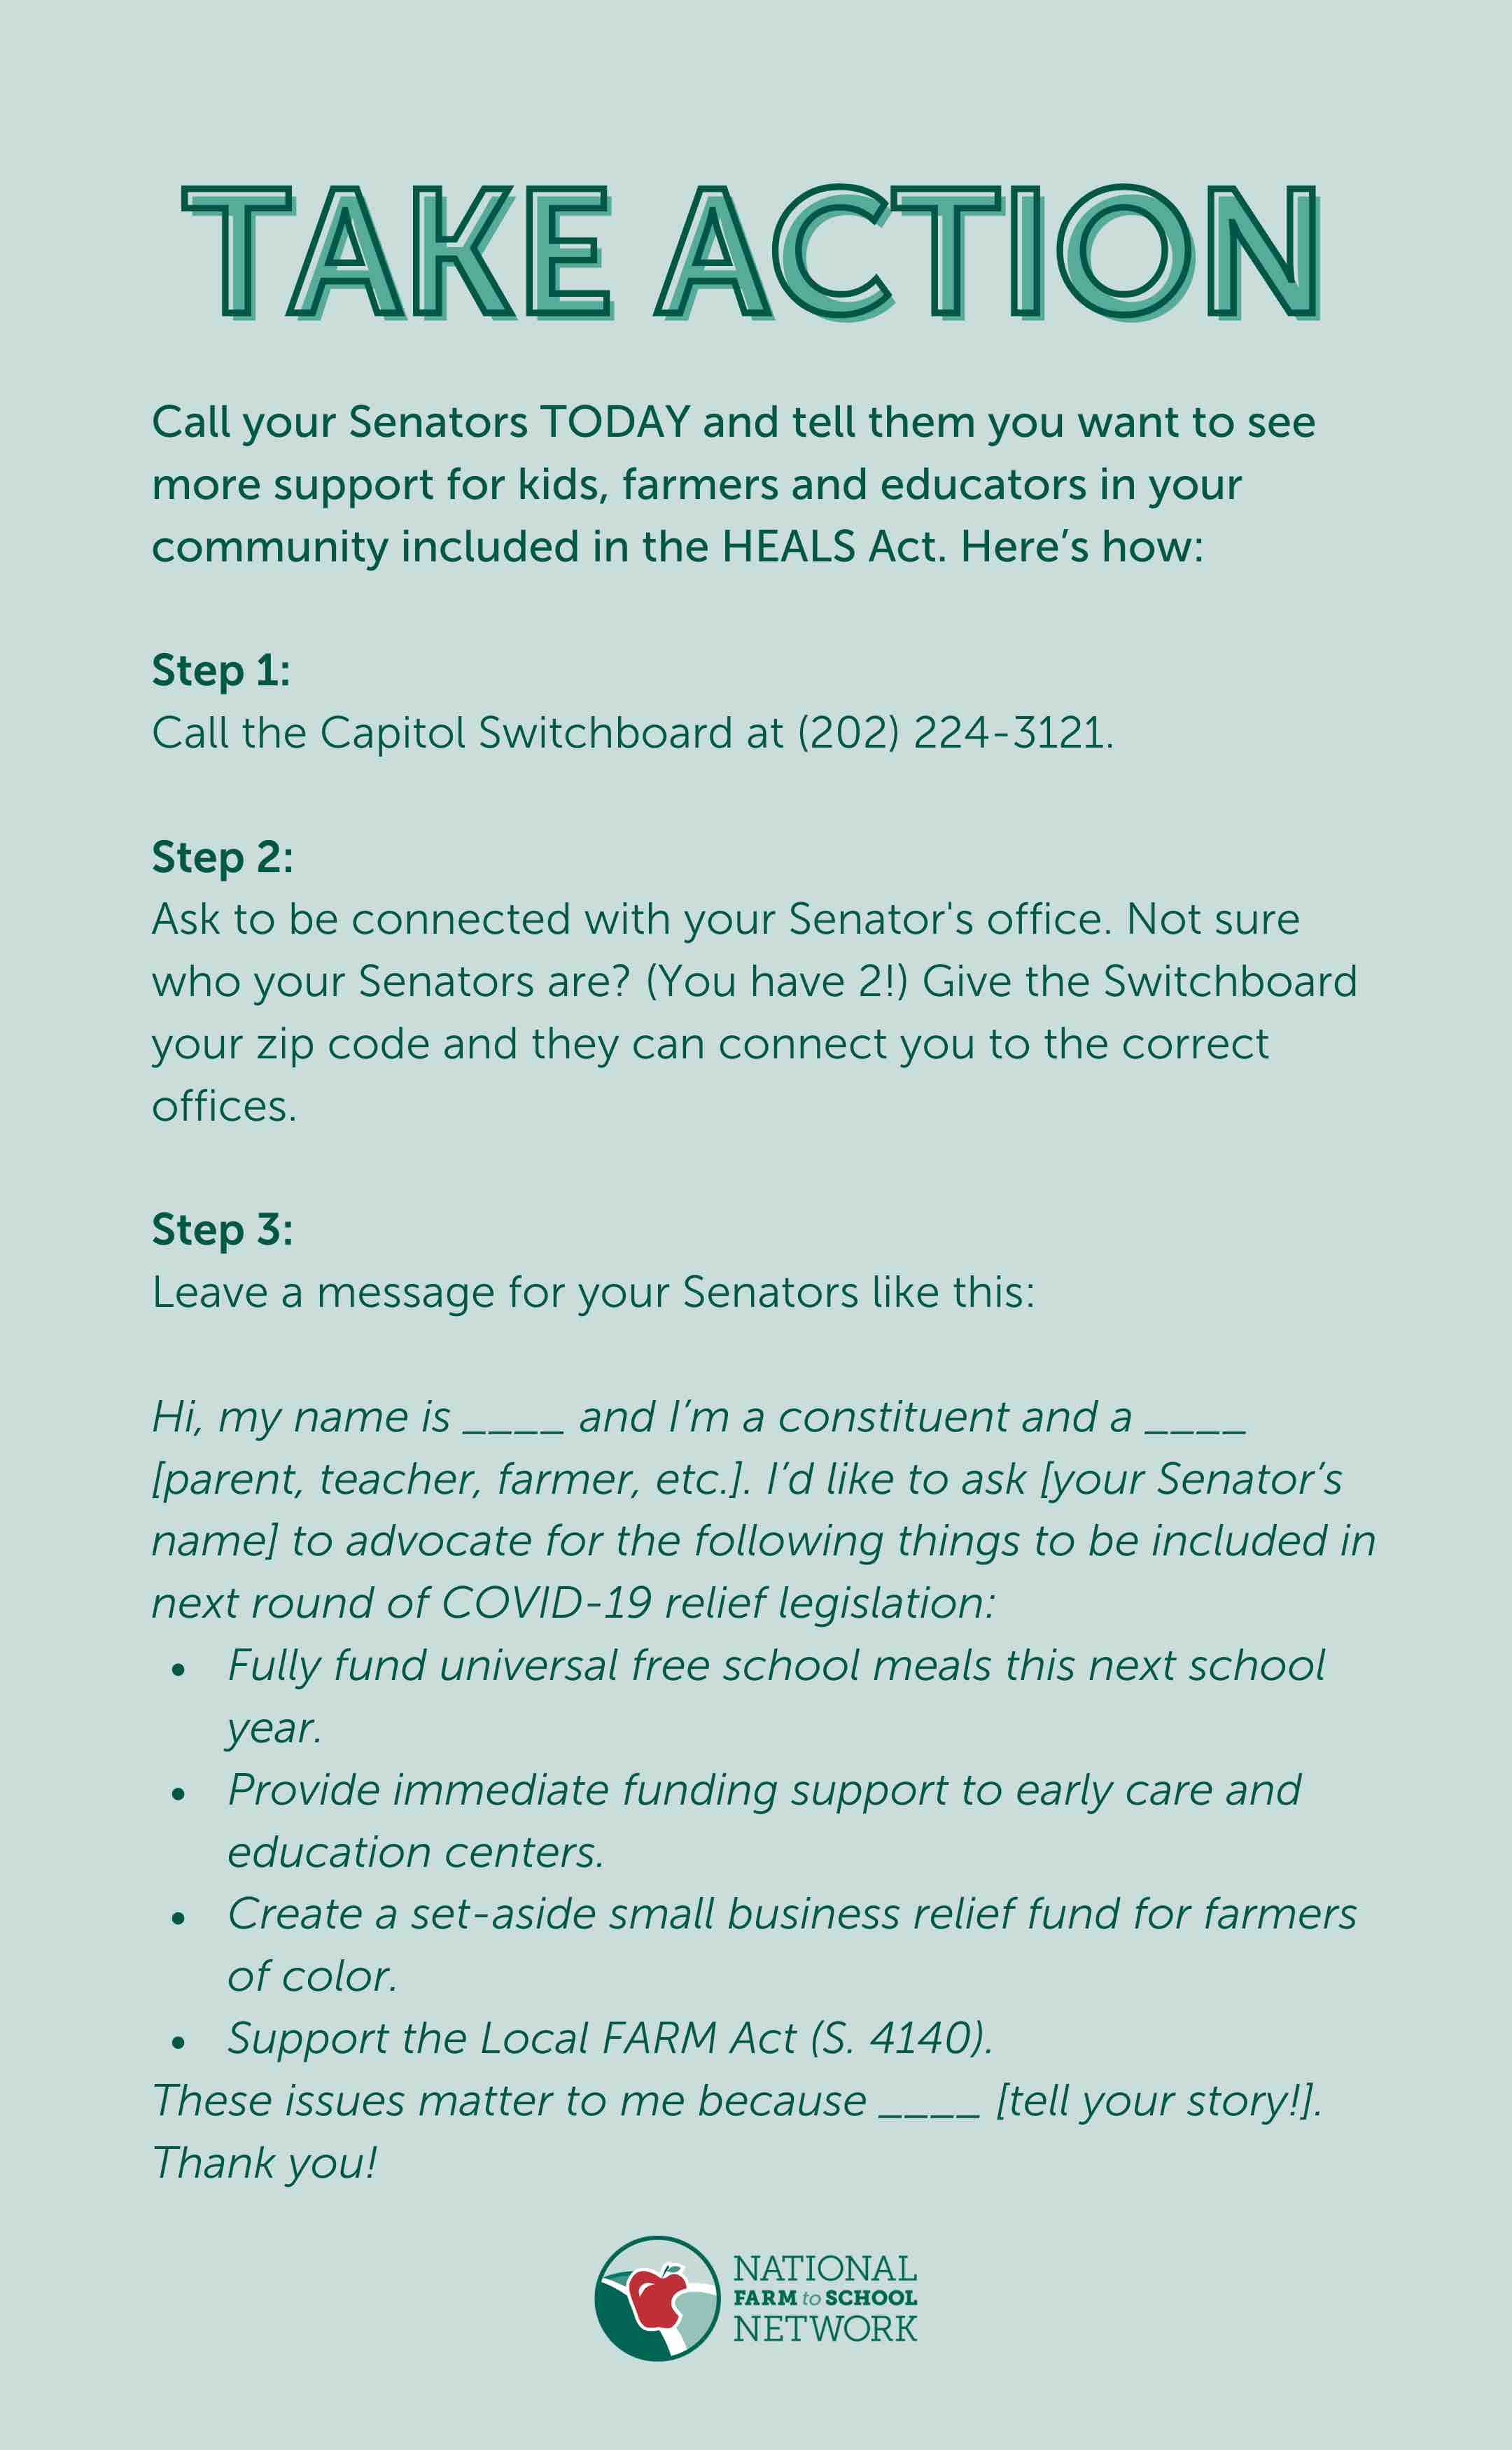 Call your Senators TODAY and tell them you want to see more support for kids, farmers and educators in your community included in the HEALS Act. Here's how: Step 1: Call the Capitol Switchboard at (202) 224-3121. Step 2: Ask to be connected with your Senator's office.Not sure who your Senators are? (You have 2!) Give the Switchboard your zip code and they can connect you to the correct offices. Step 3: Leave a message for your Senators like this:Hi, my name is ____ and I'm a constituent and a ____ [parent, teacher, farmer, etc.]. I'd like to ask [your Senator's name] to advocate for the following things to be included in next round of COVID-19 relief legislation:Fully fund universal free school meals this next school year.Provide immediate funding support to early care and education centers.Create a set-aside small business relief fund for farmers of color. Support the Local FARM Act (S. 4140). These issues matter to me because ____ [tell your story!]. Thank you!